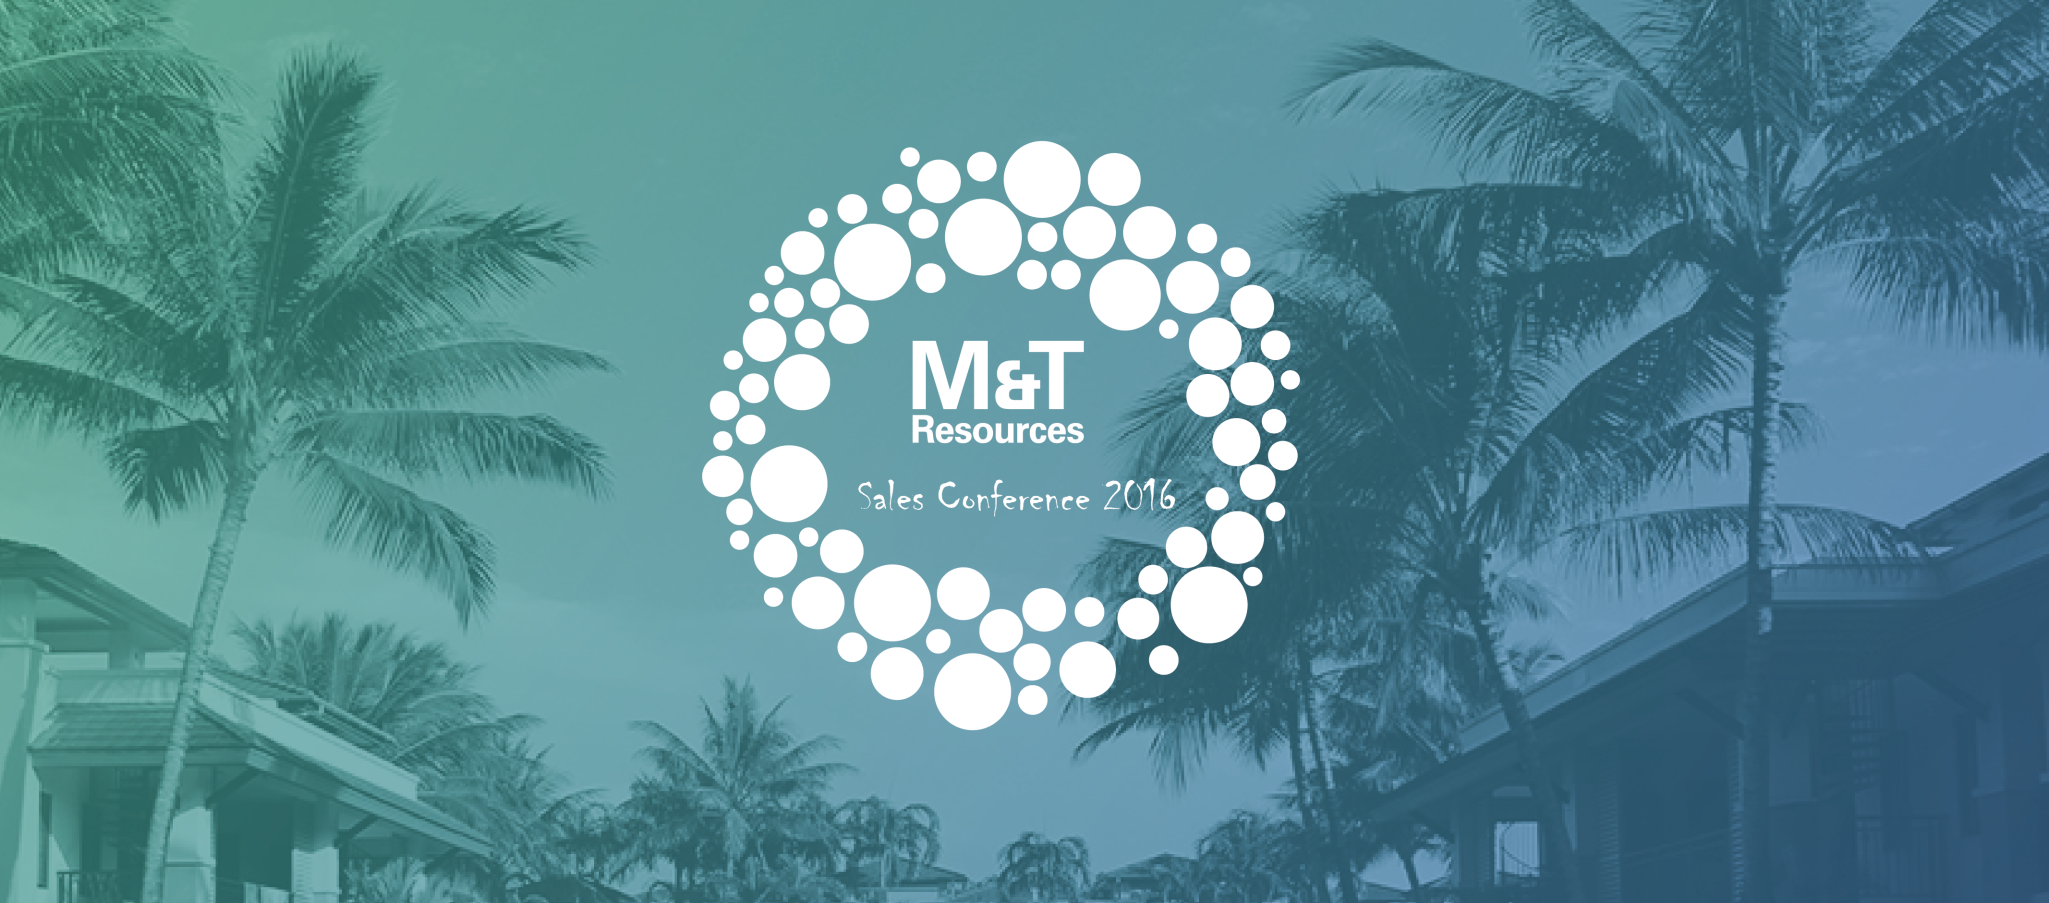 A Fantastic Year in Recruitment – M&T Sales Conference 2016